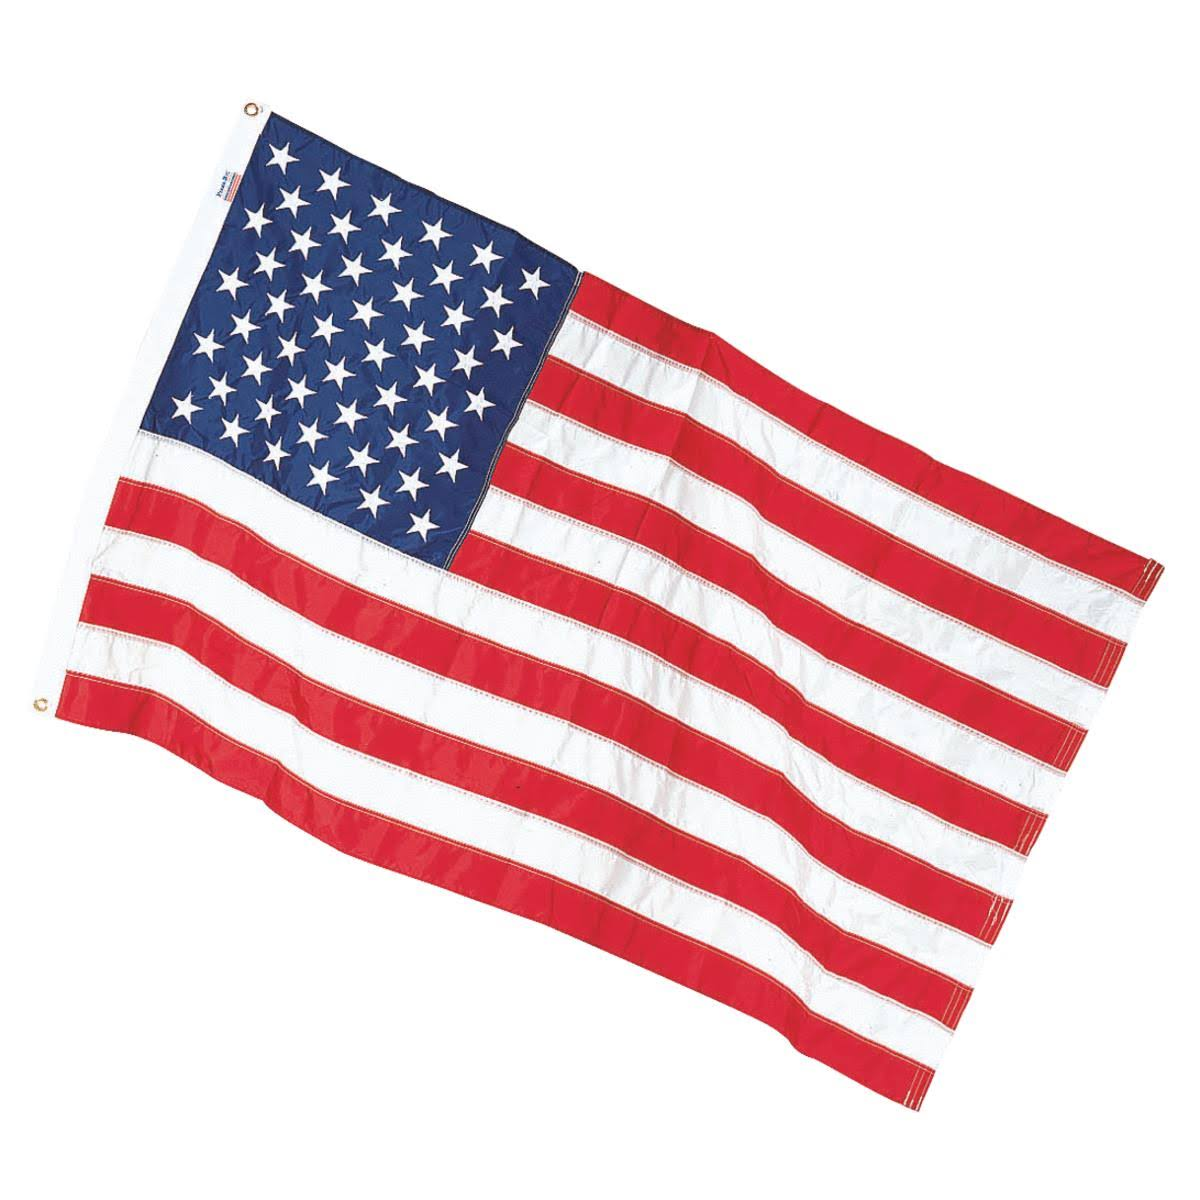 Valley Forge Flag Large Nylon US American Flag - 5ft x 8ft